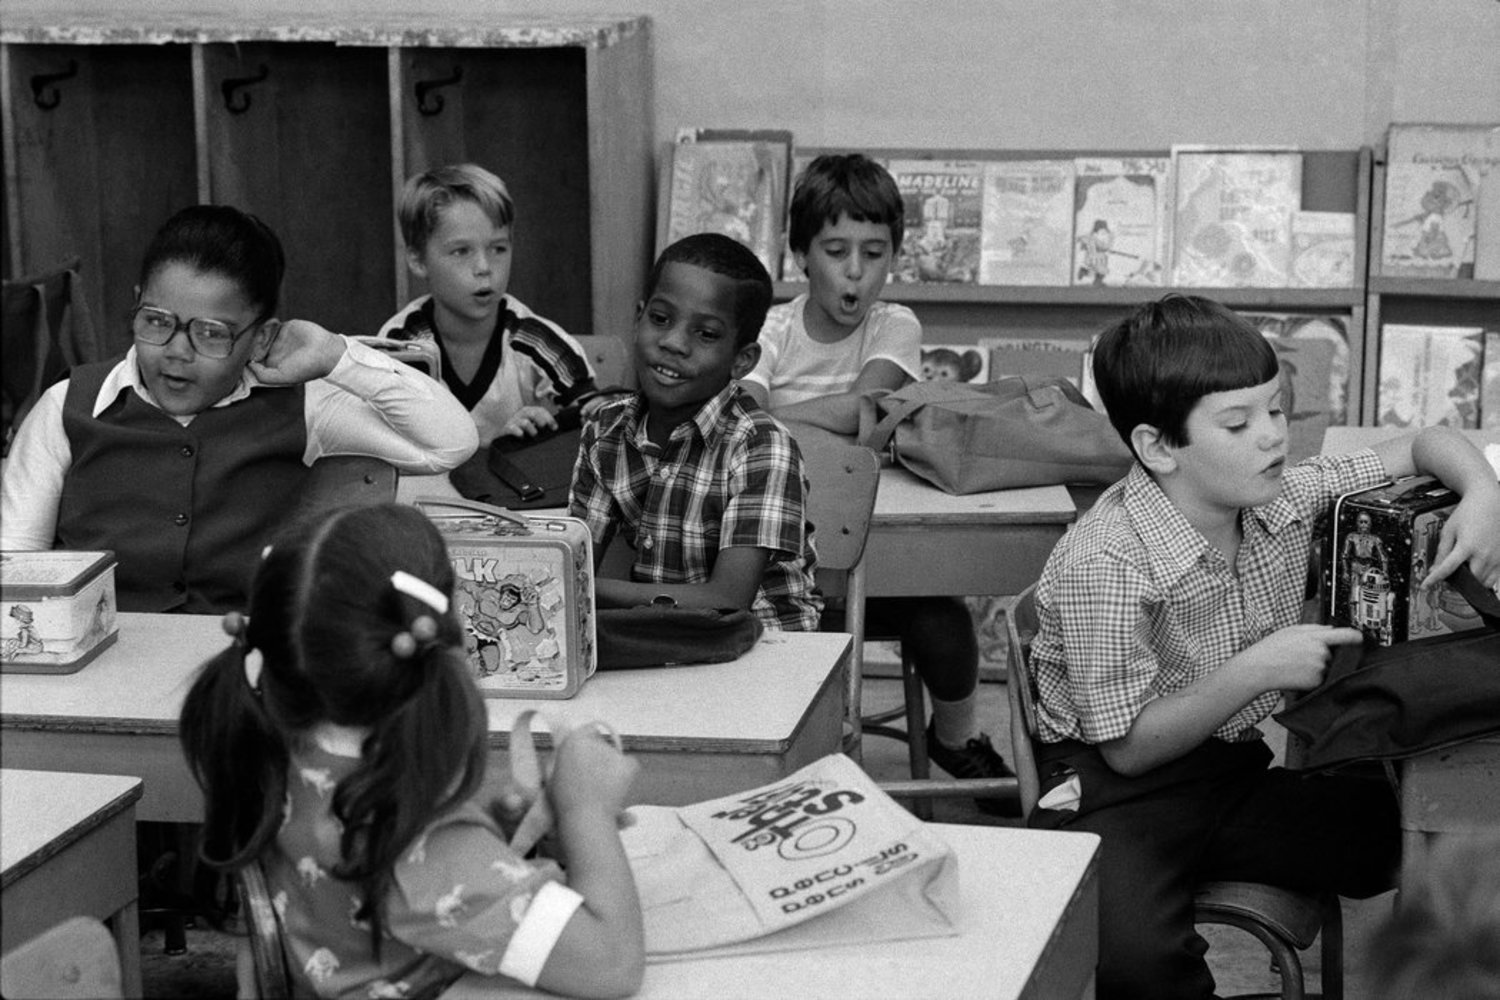 1980s - September 1980: New lunchboxes and post-vacation greetings occupied children at Public School 207 in Brooklyn.